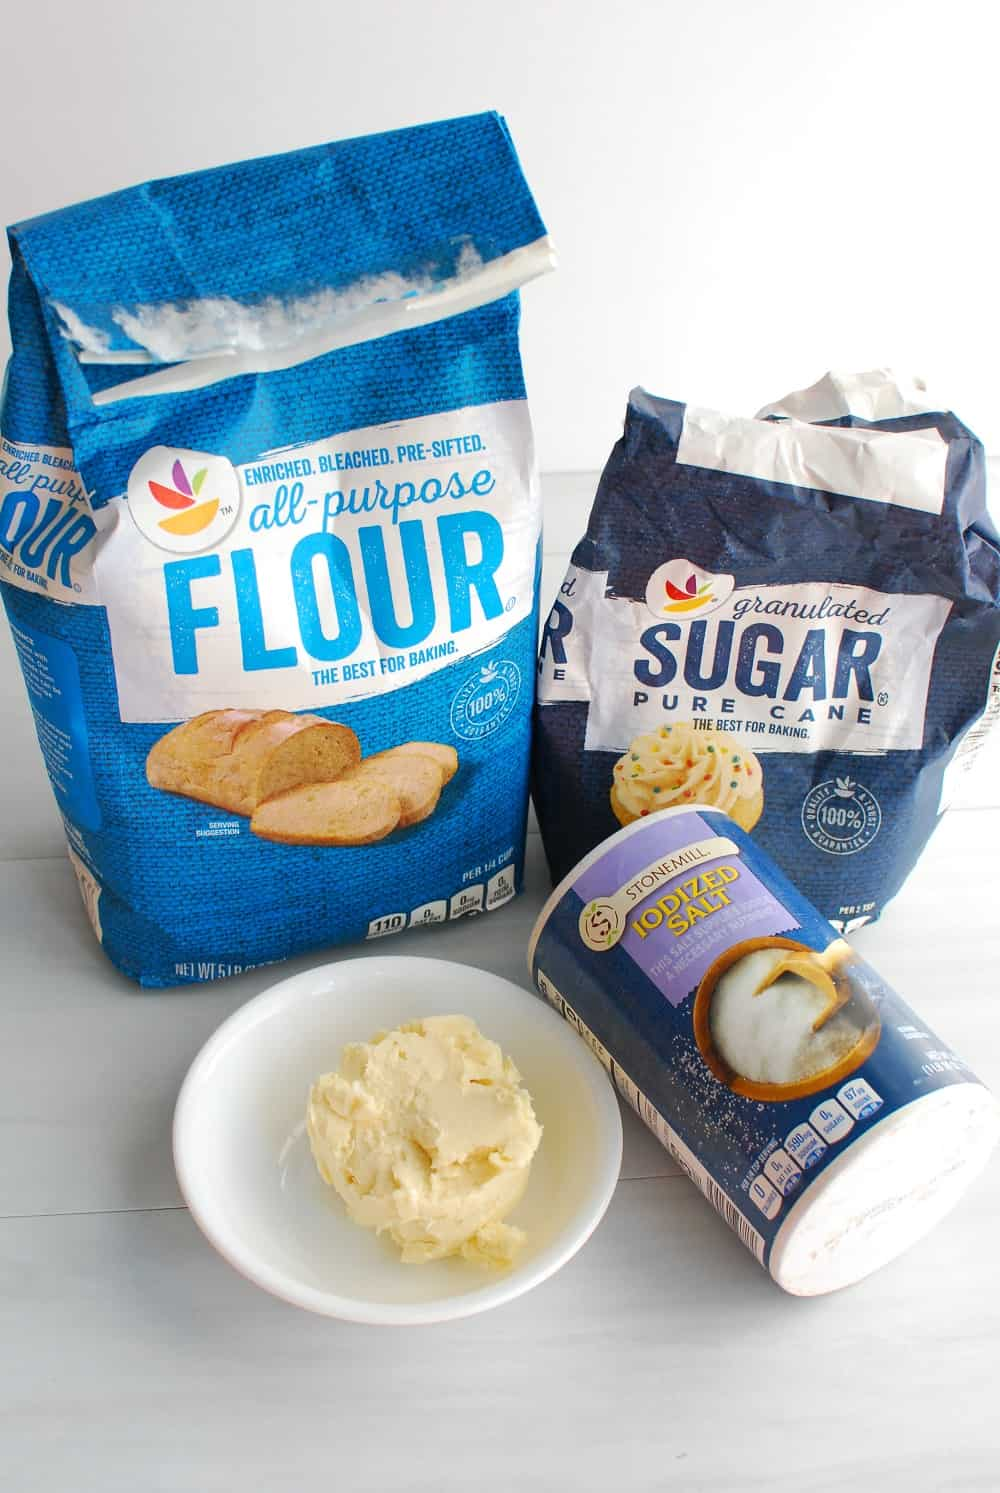 A bag of flour, a bowl of dairy free butter, a bag of sugar, and a canister of salt